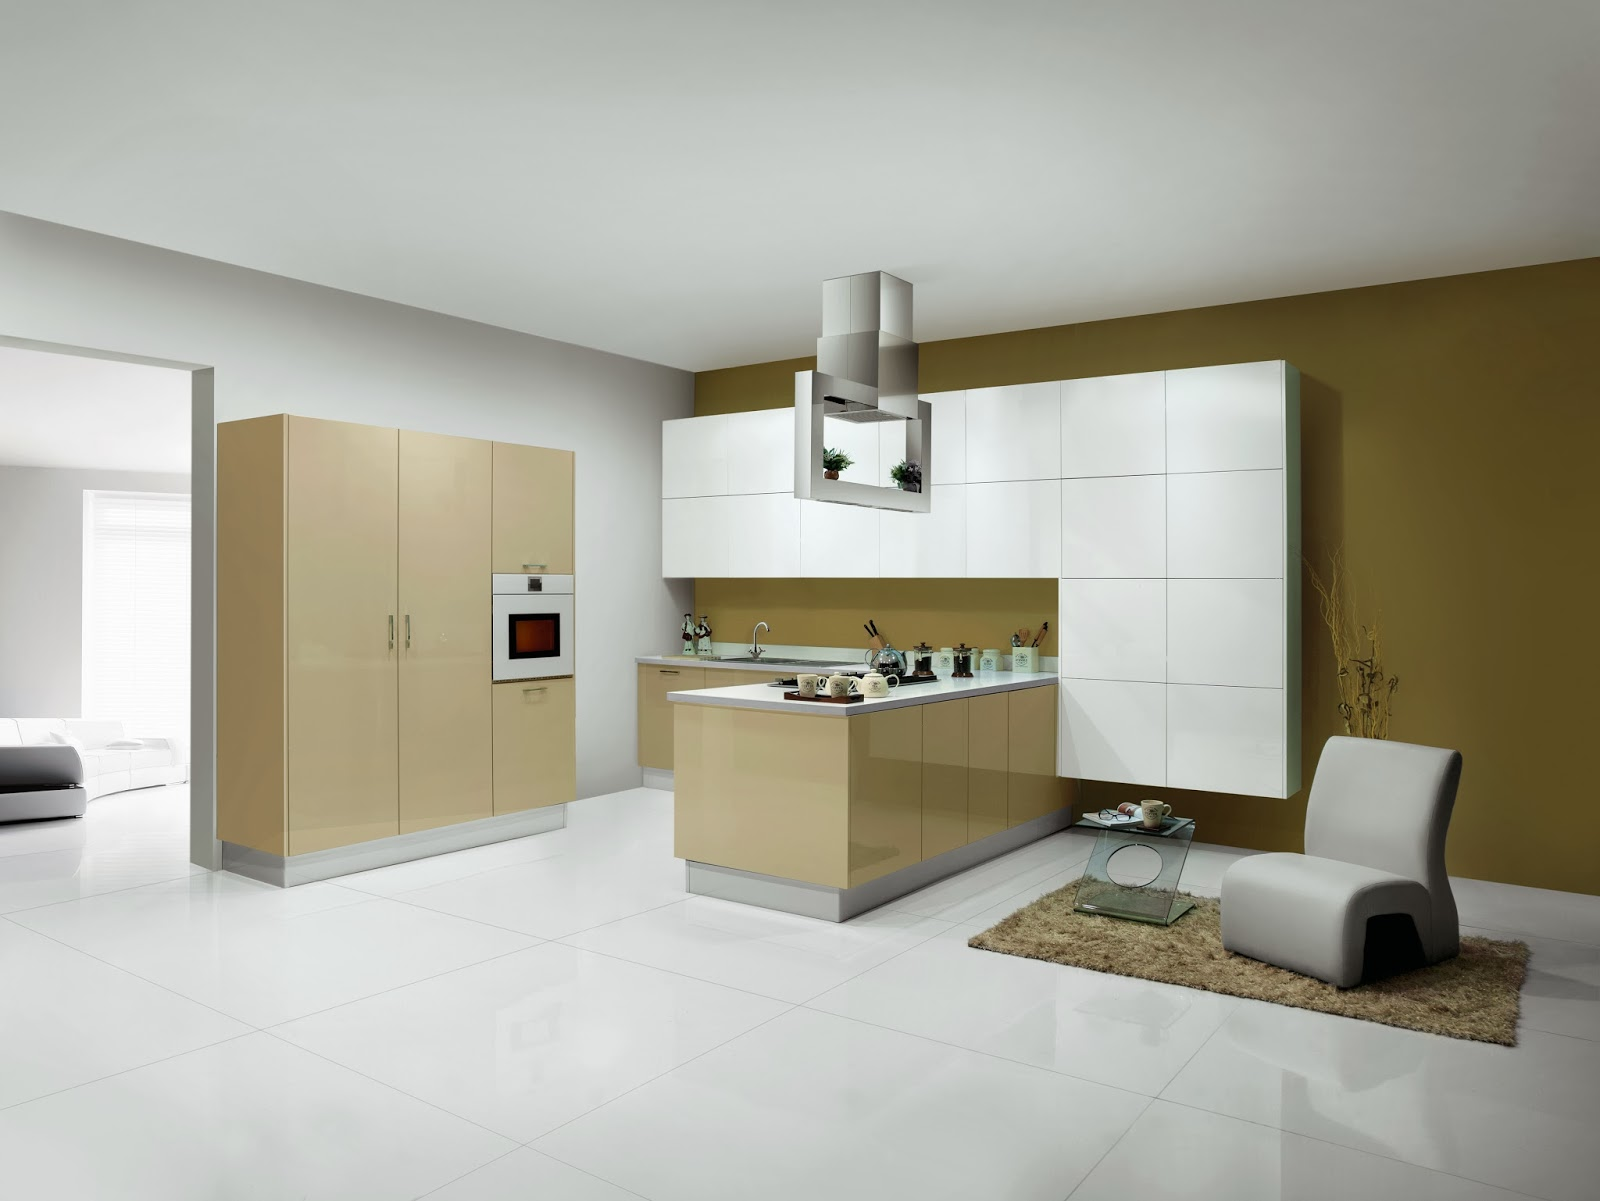 modular kitchens the new vogue in market how to maintain modular kitchen by sleek the. Black Bedroom Furniture Sets. Home Design Ideas